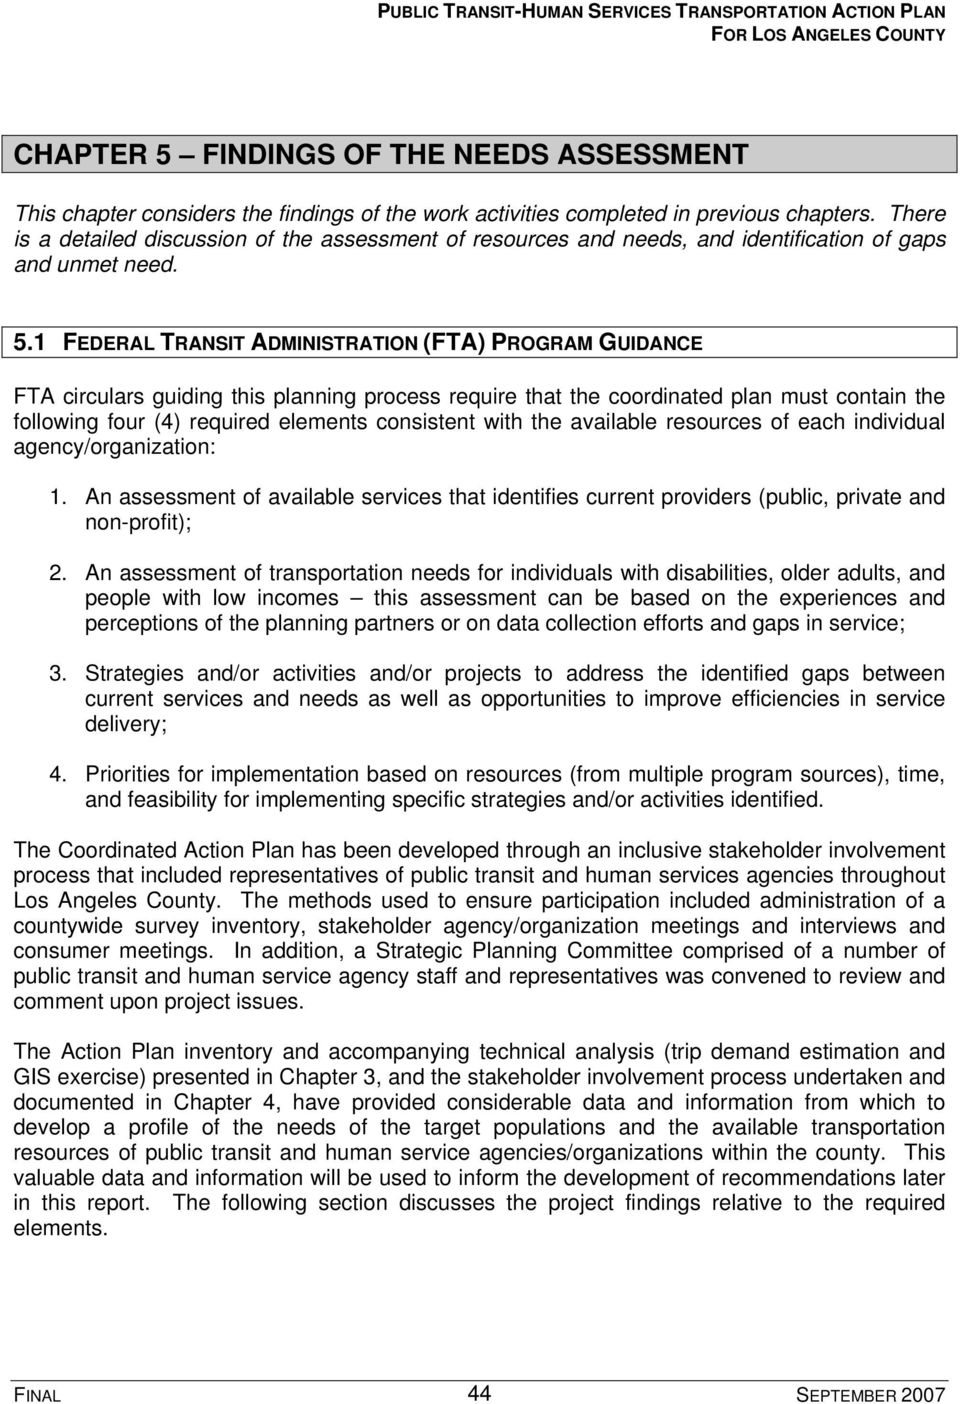 1 FEDERAL TRANSIT ADMINISTRATION (FTA) PROGRAM GUIDANCE FTA circulars guiding this planning process require that the coordinated plan must contain the following four (4) required elements consistent